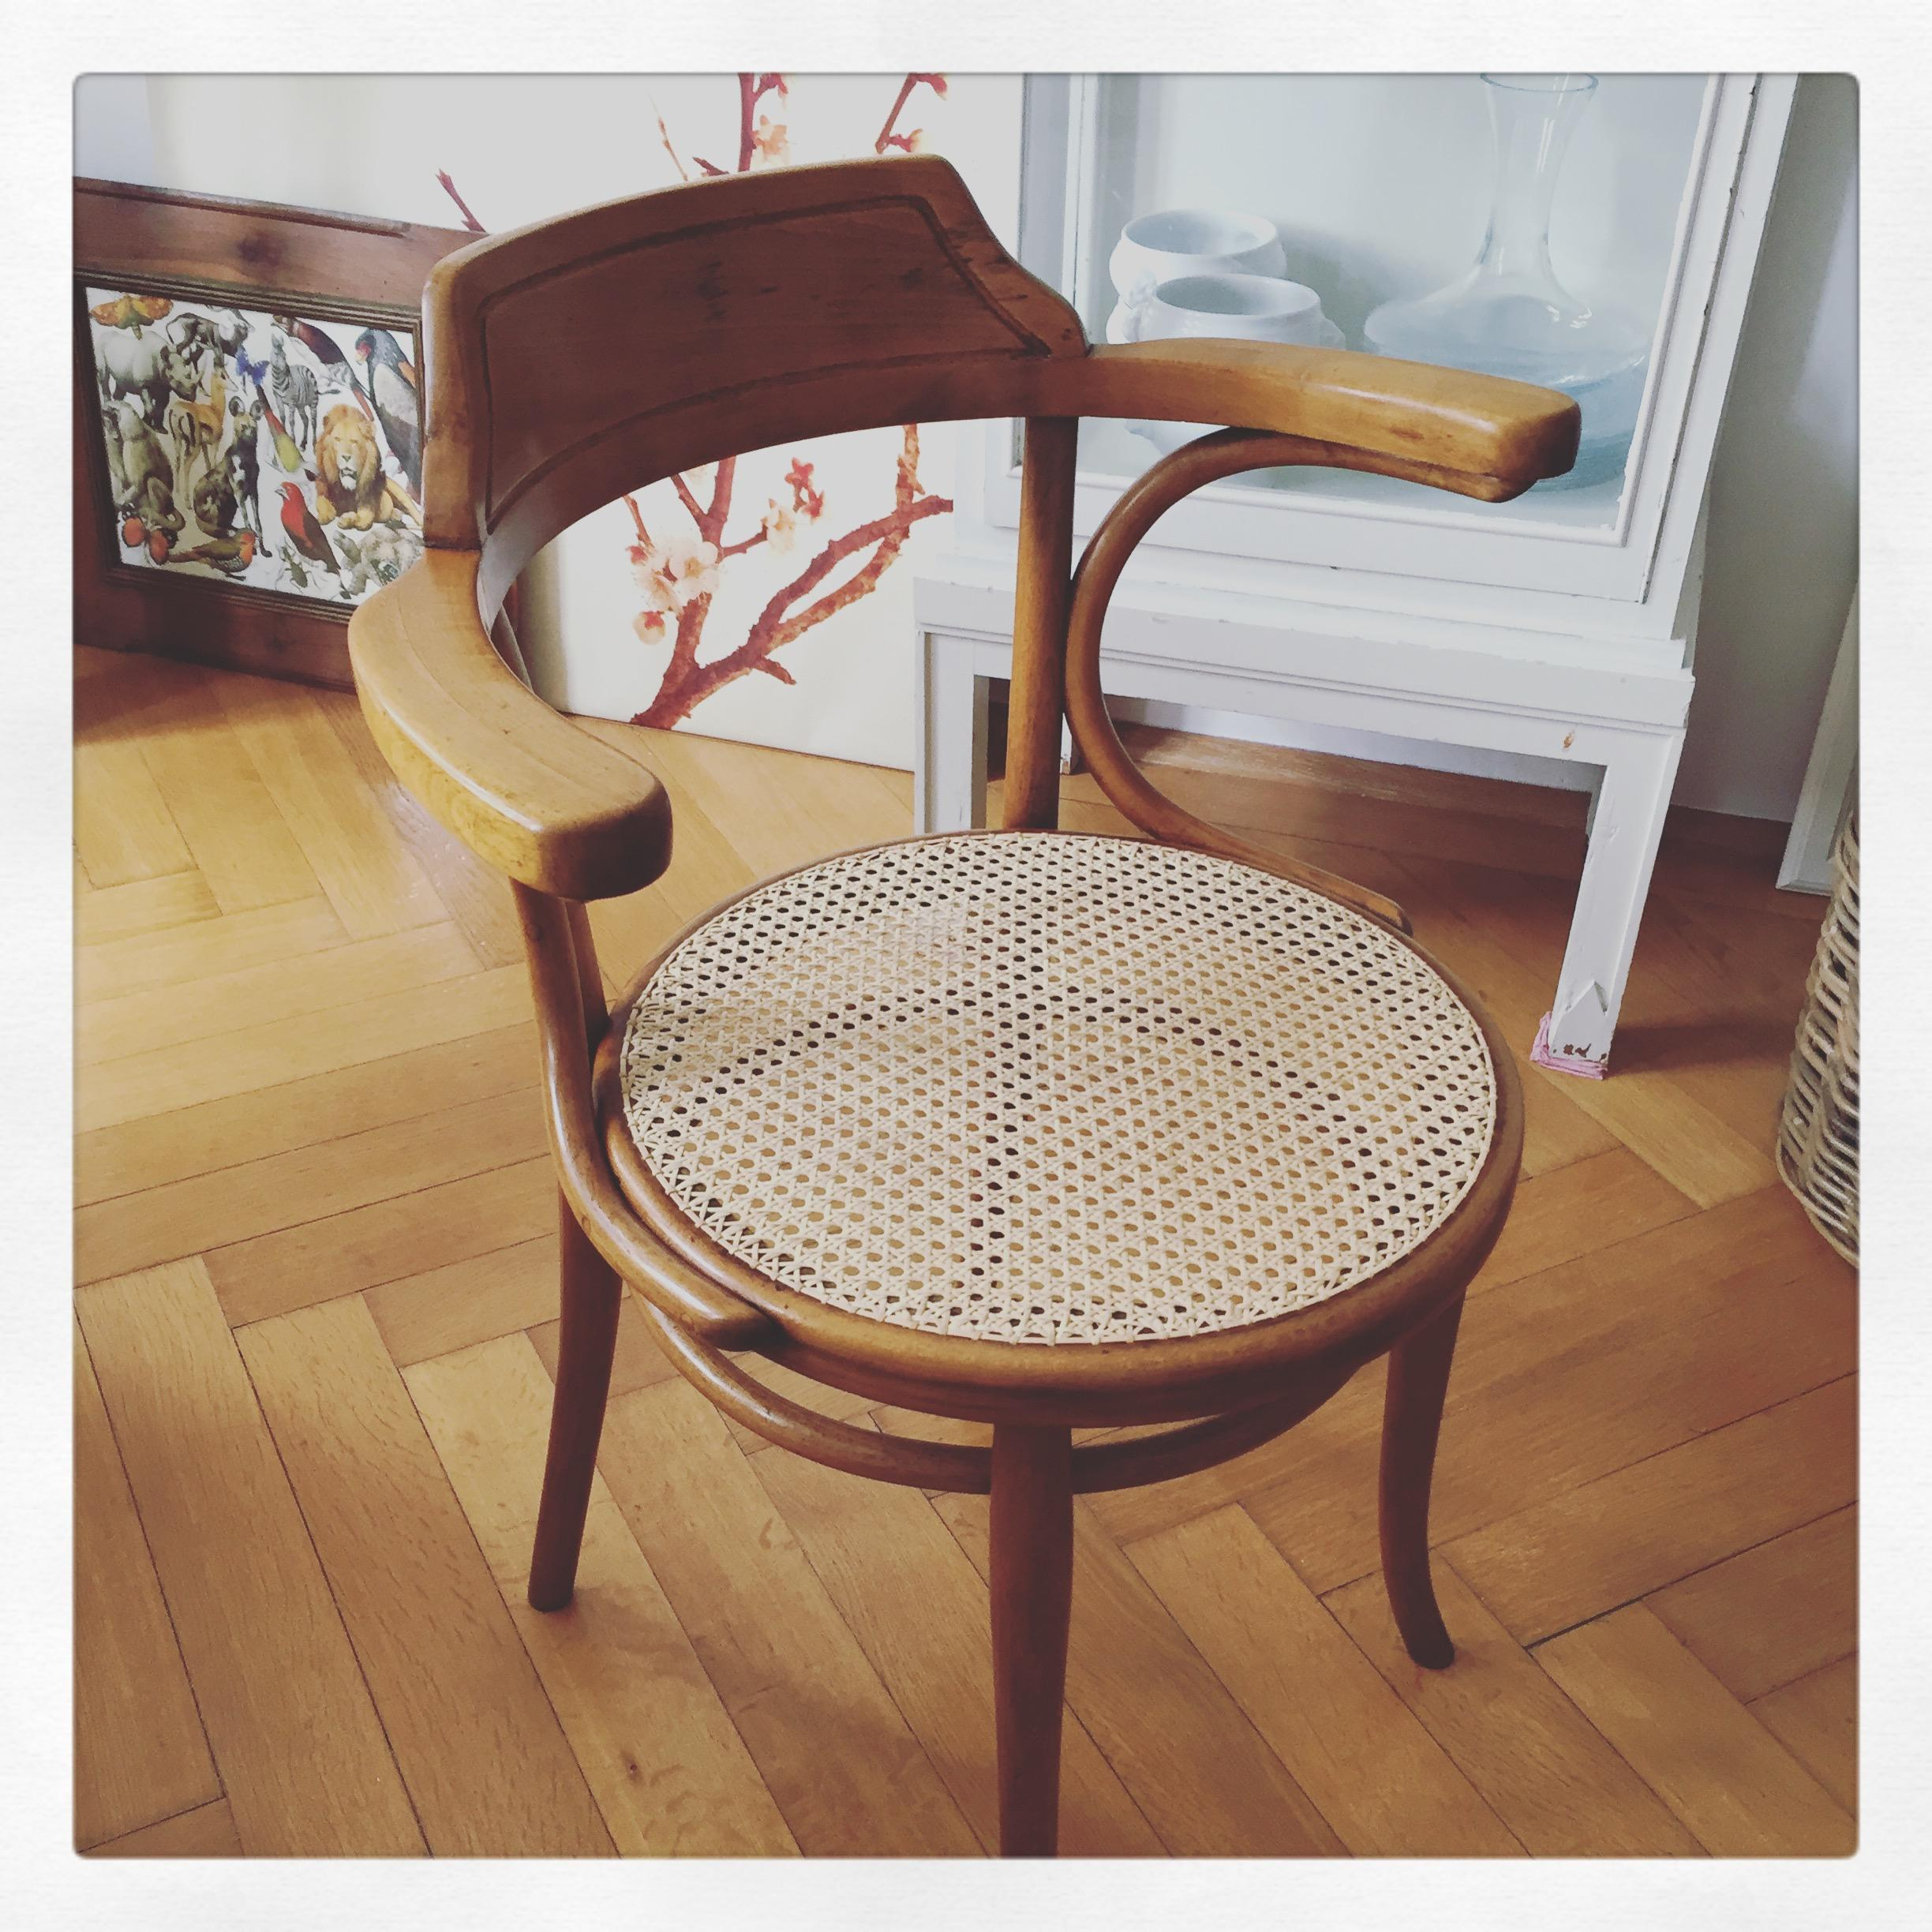 Love my new old #refurbished #thonetchair